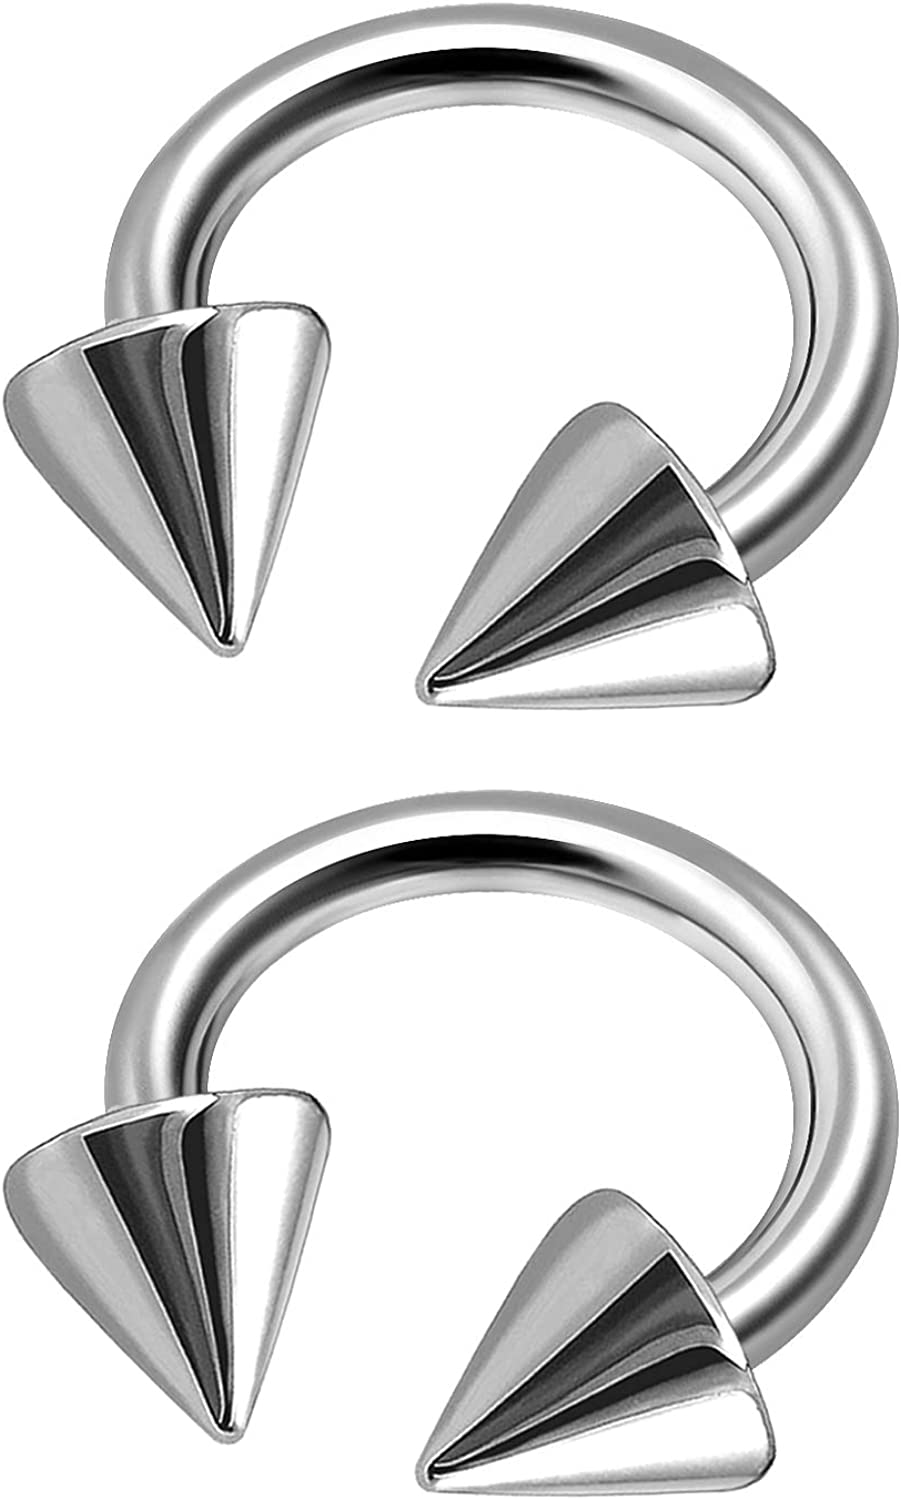 MATIGA 2Pcs Surgical Steel 14 Gauge Horseshoe Hoops Piercing Jewelry Cartilage Daith Septum Eyebrow Tragus 5mm Cone More Choices